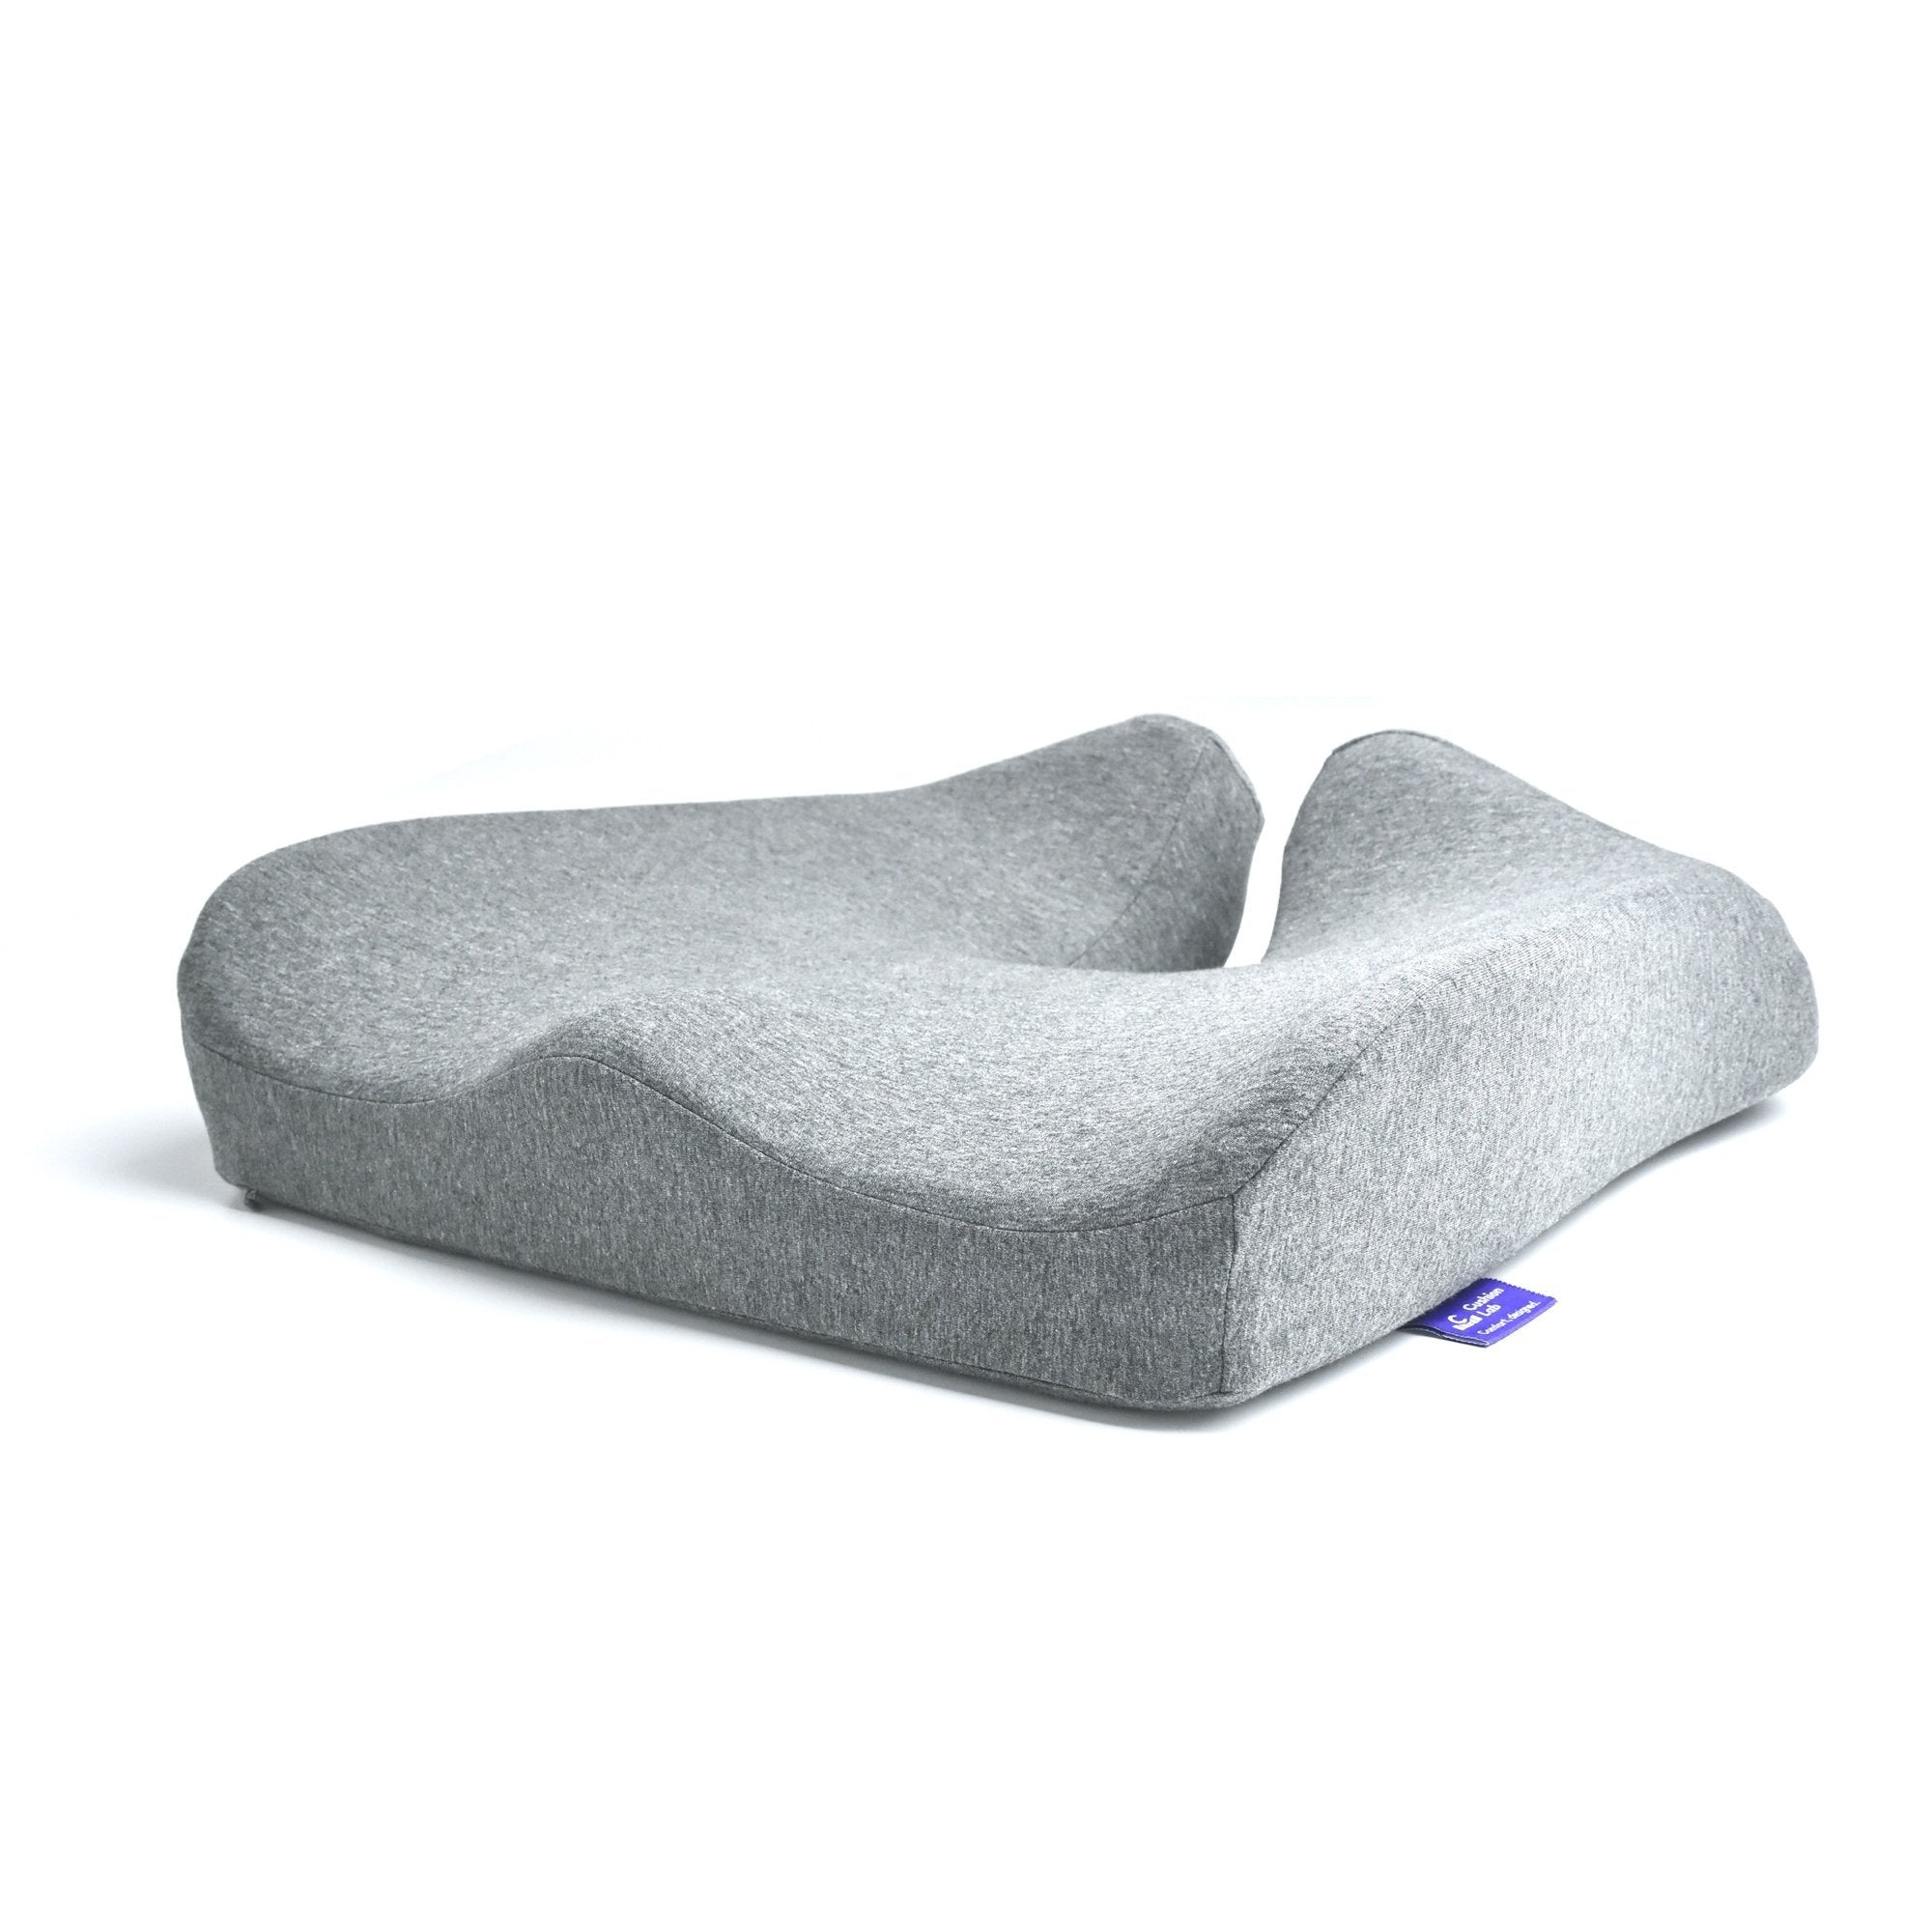 Pressure Relief Seat Cushion